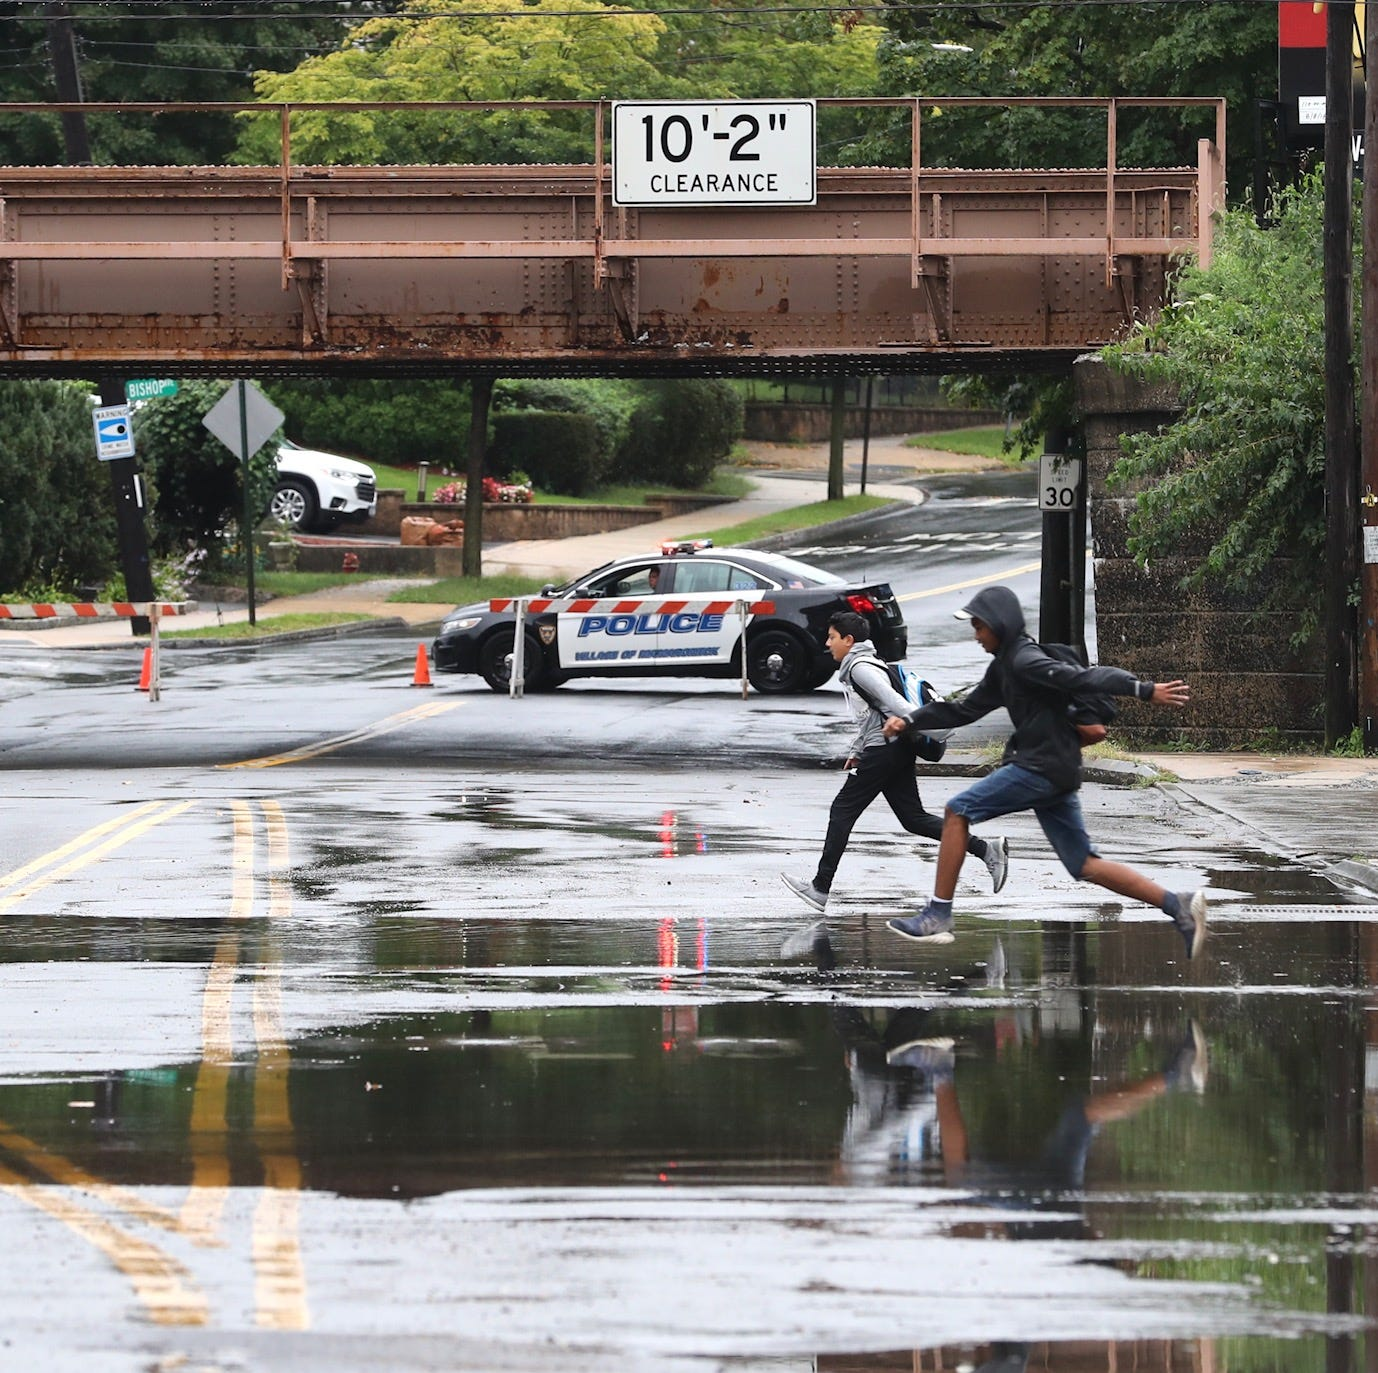 Flooding could slow traffic during evening commute